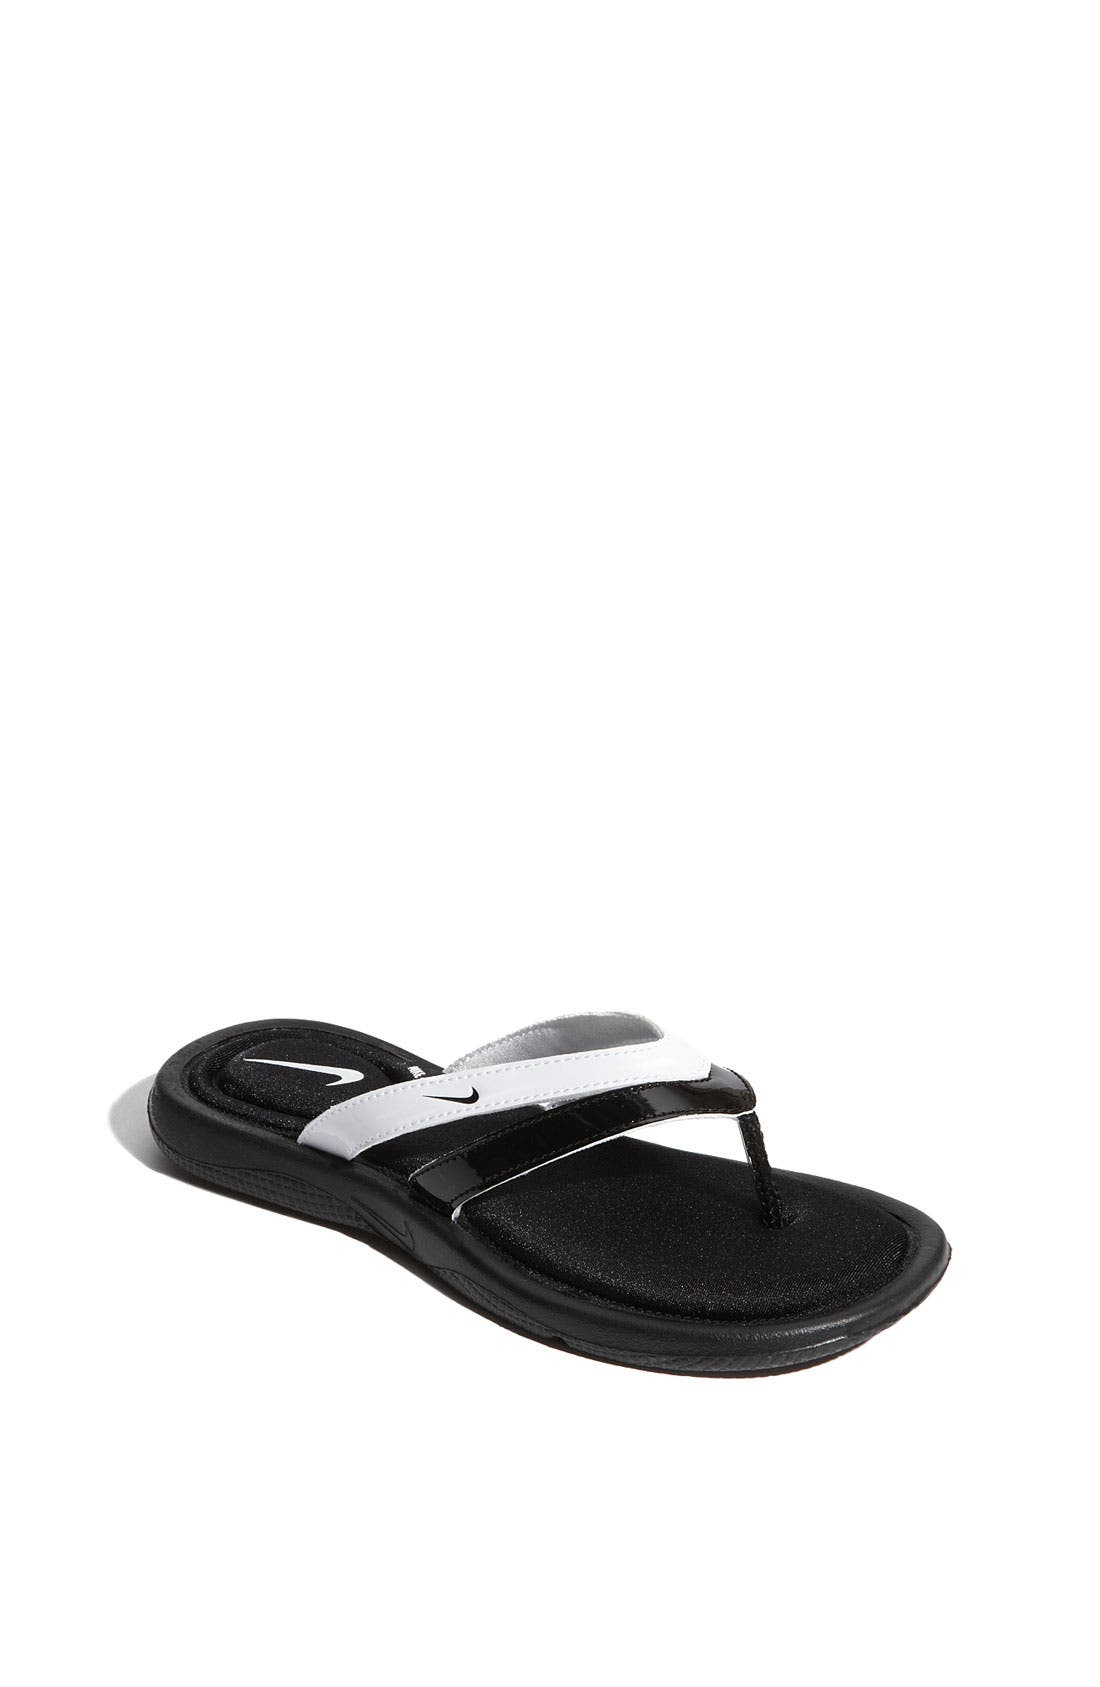 Main Image - Nike 'Comfort' Thong Sandal (Toddler, Little Kid & Big Kid)